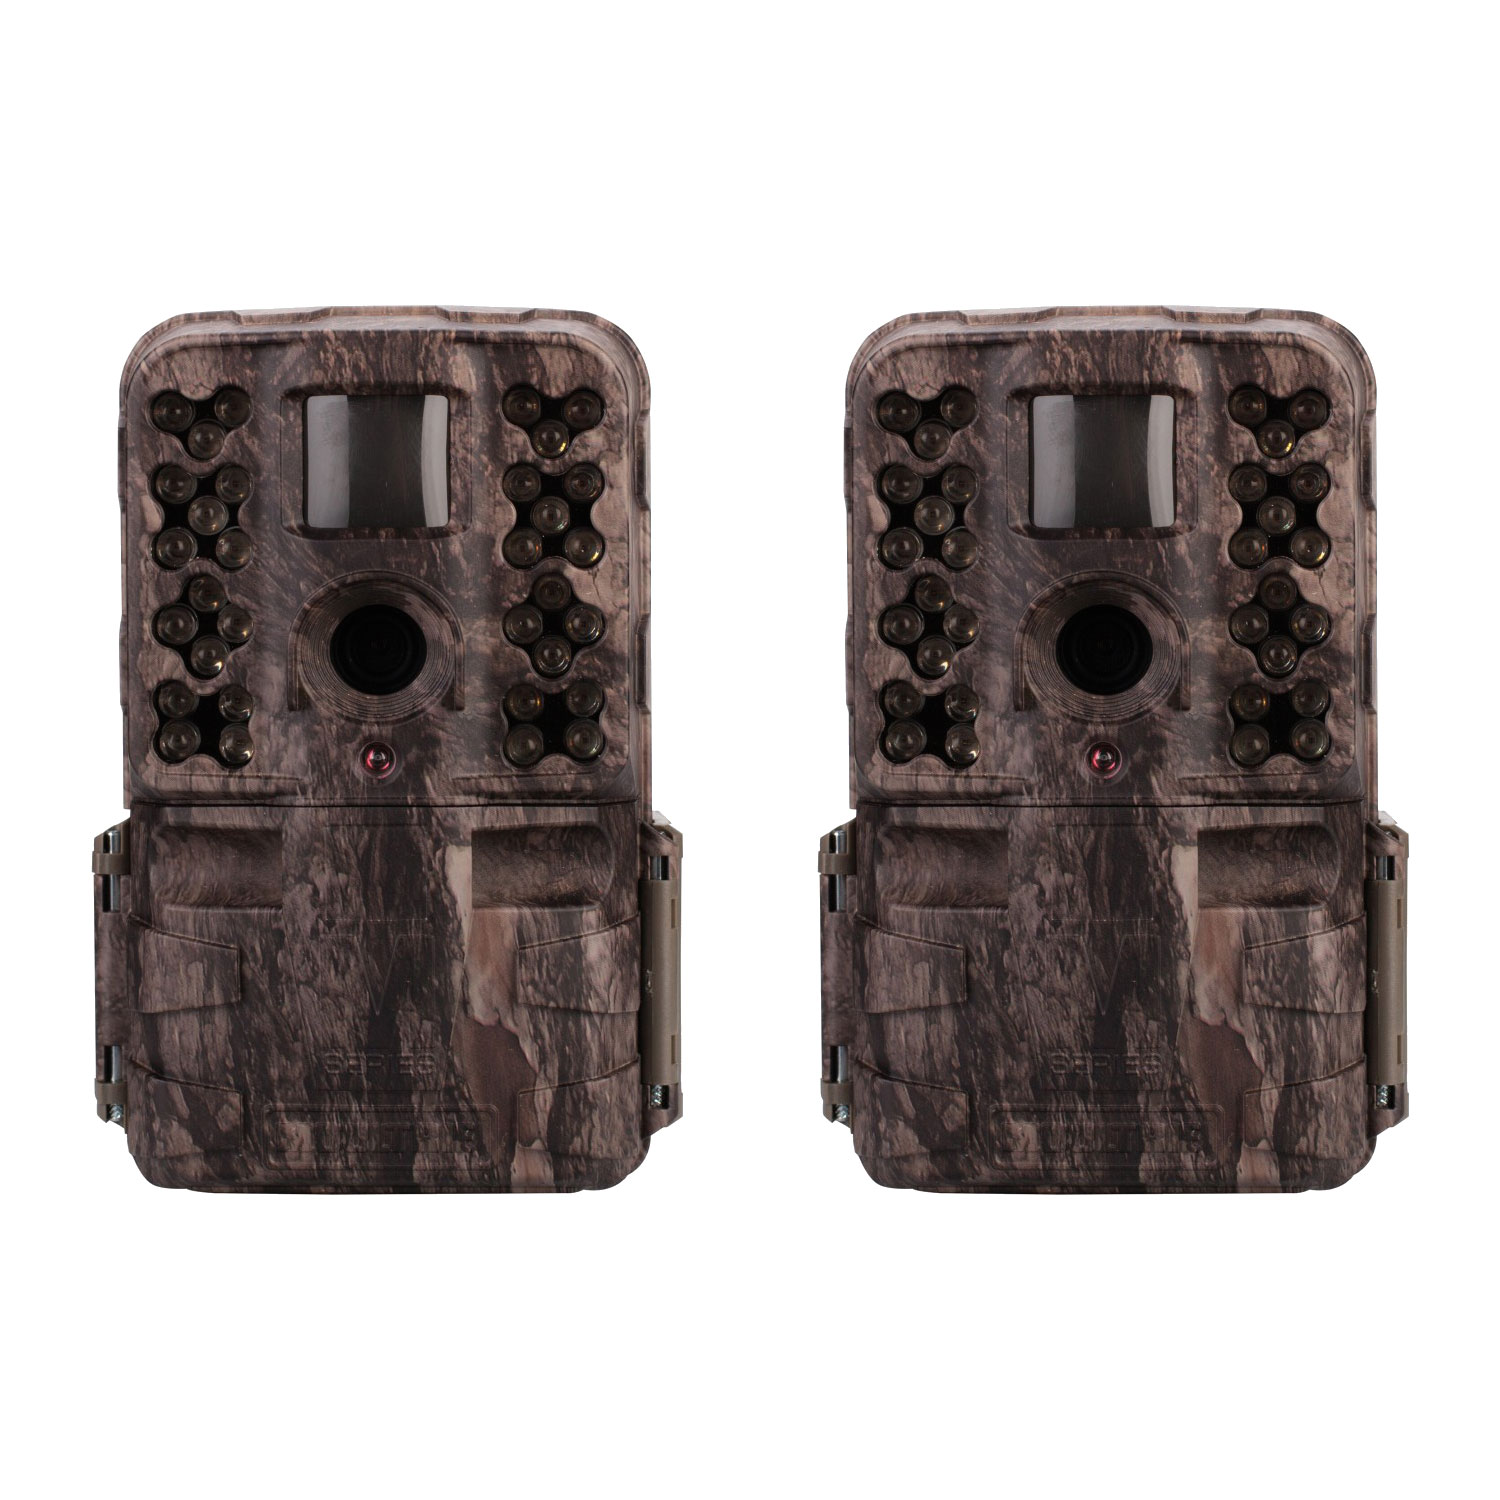 Moultrie M-50i 20MP No Glow Invisible IR Game Trail Camera, Pine Bark (2 Pack)